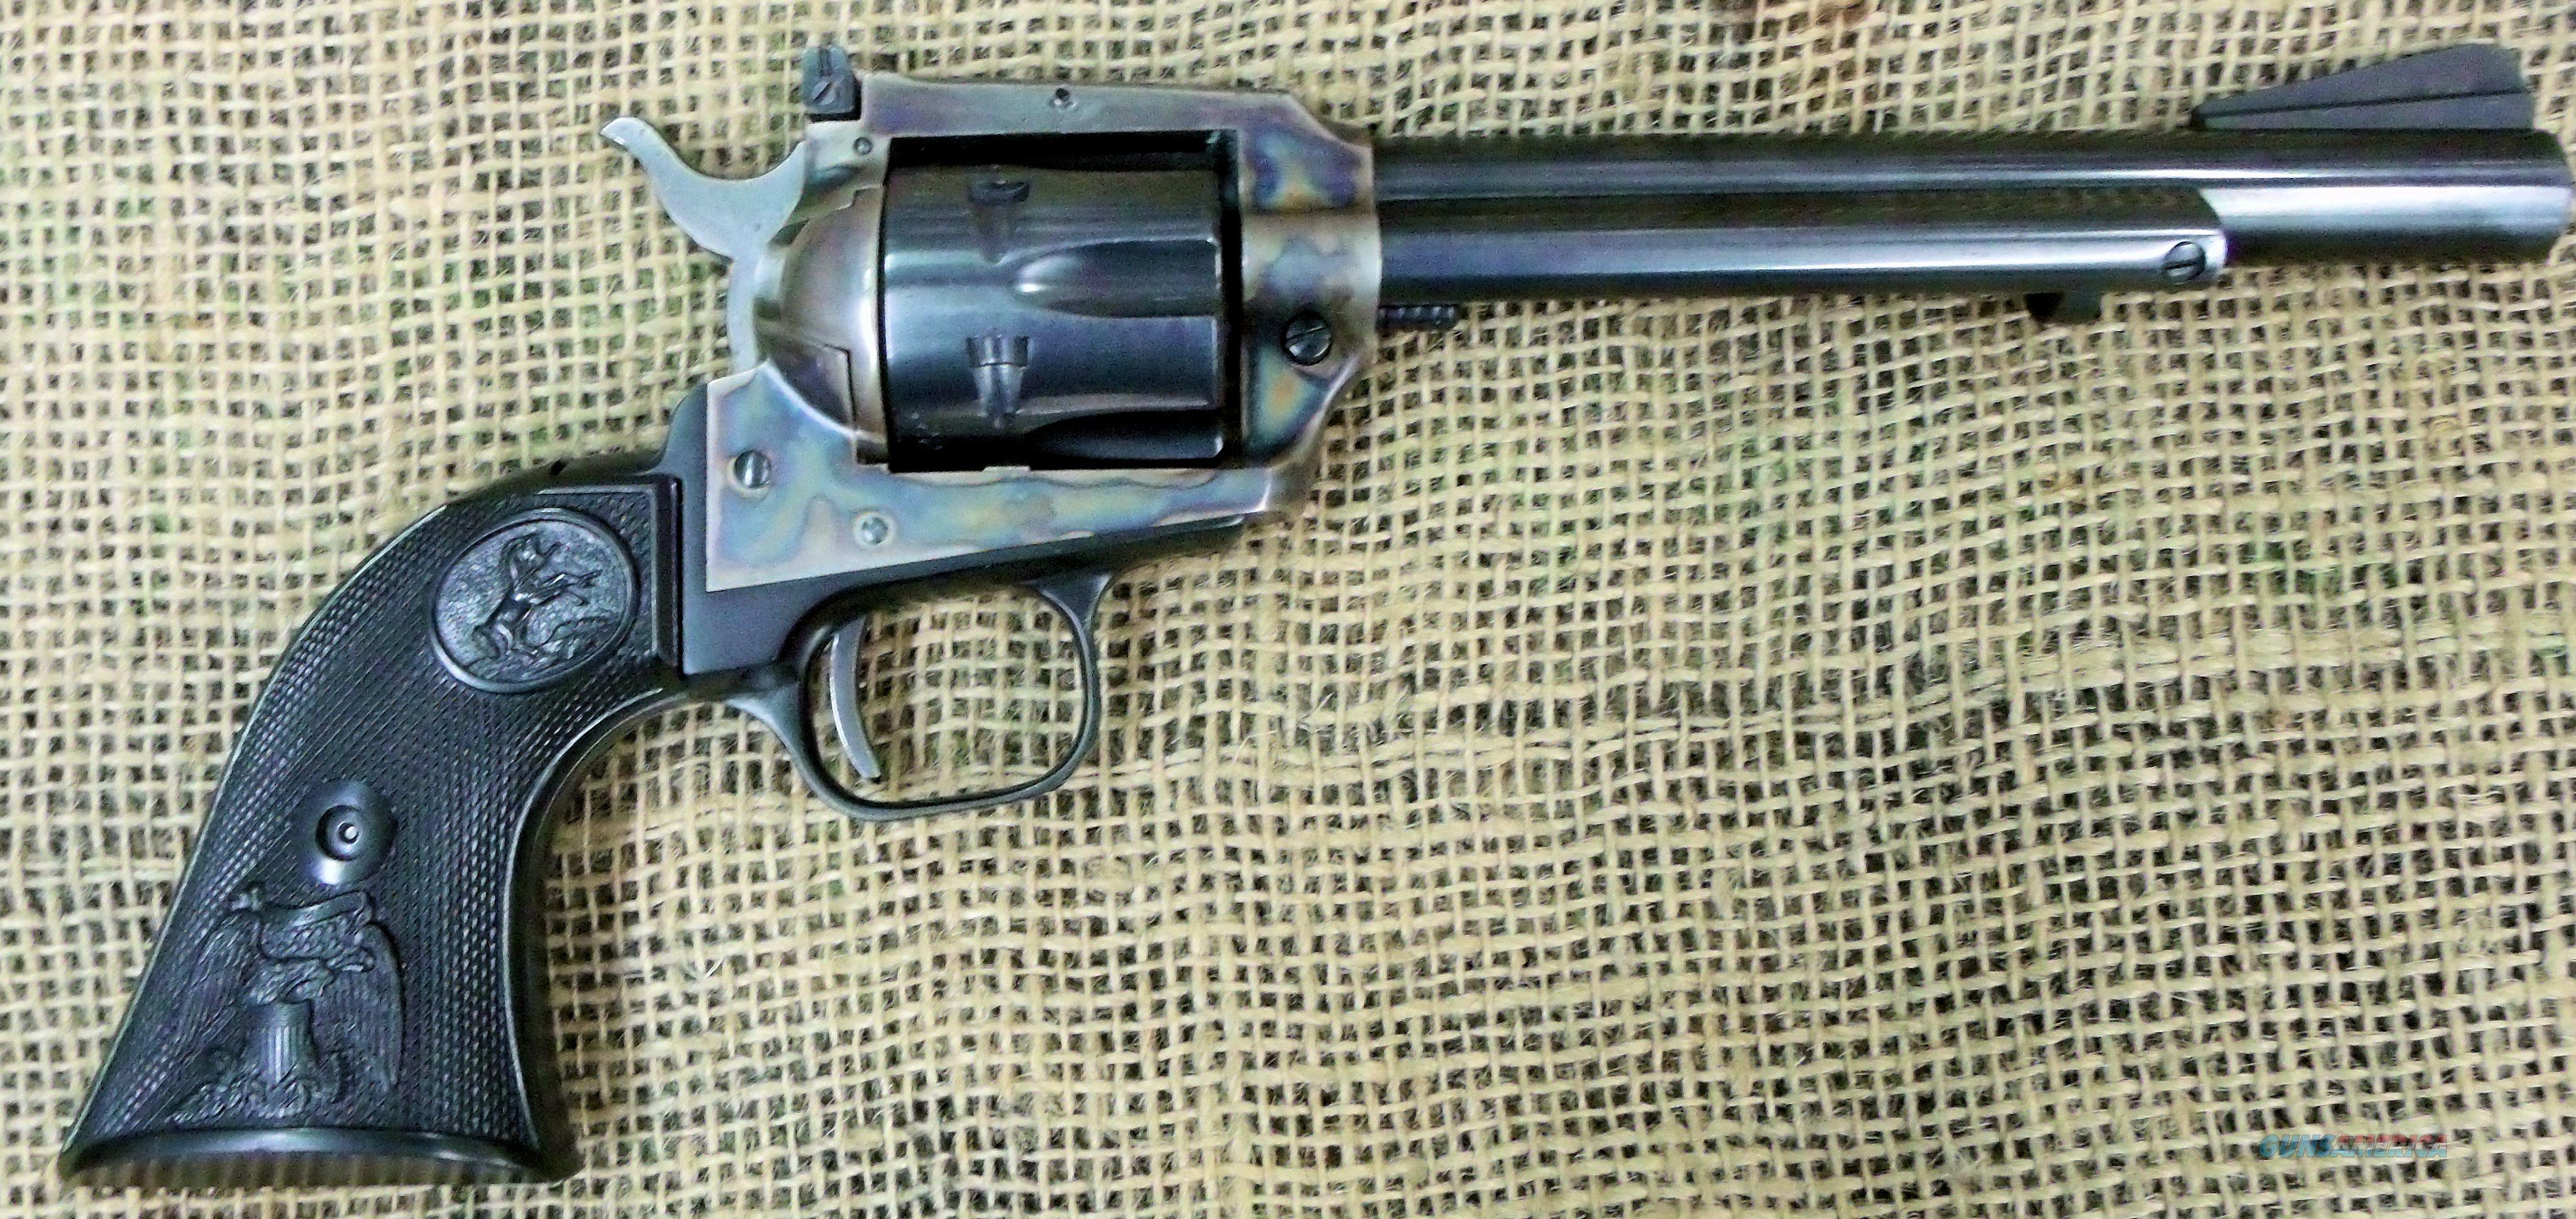 COLT SAA New Frontier Revolver, 22LR Cal.  Guns > Pistols > Colt Single Action Revolvers - Modern (22 Cal.)